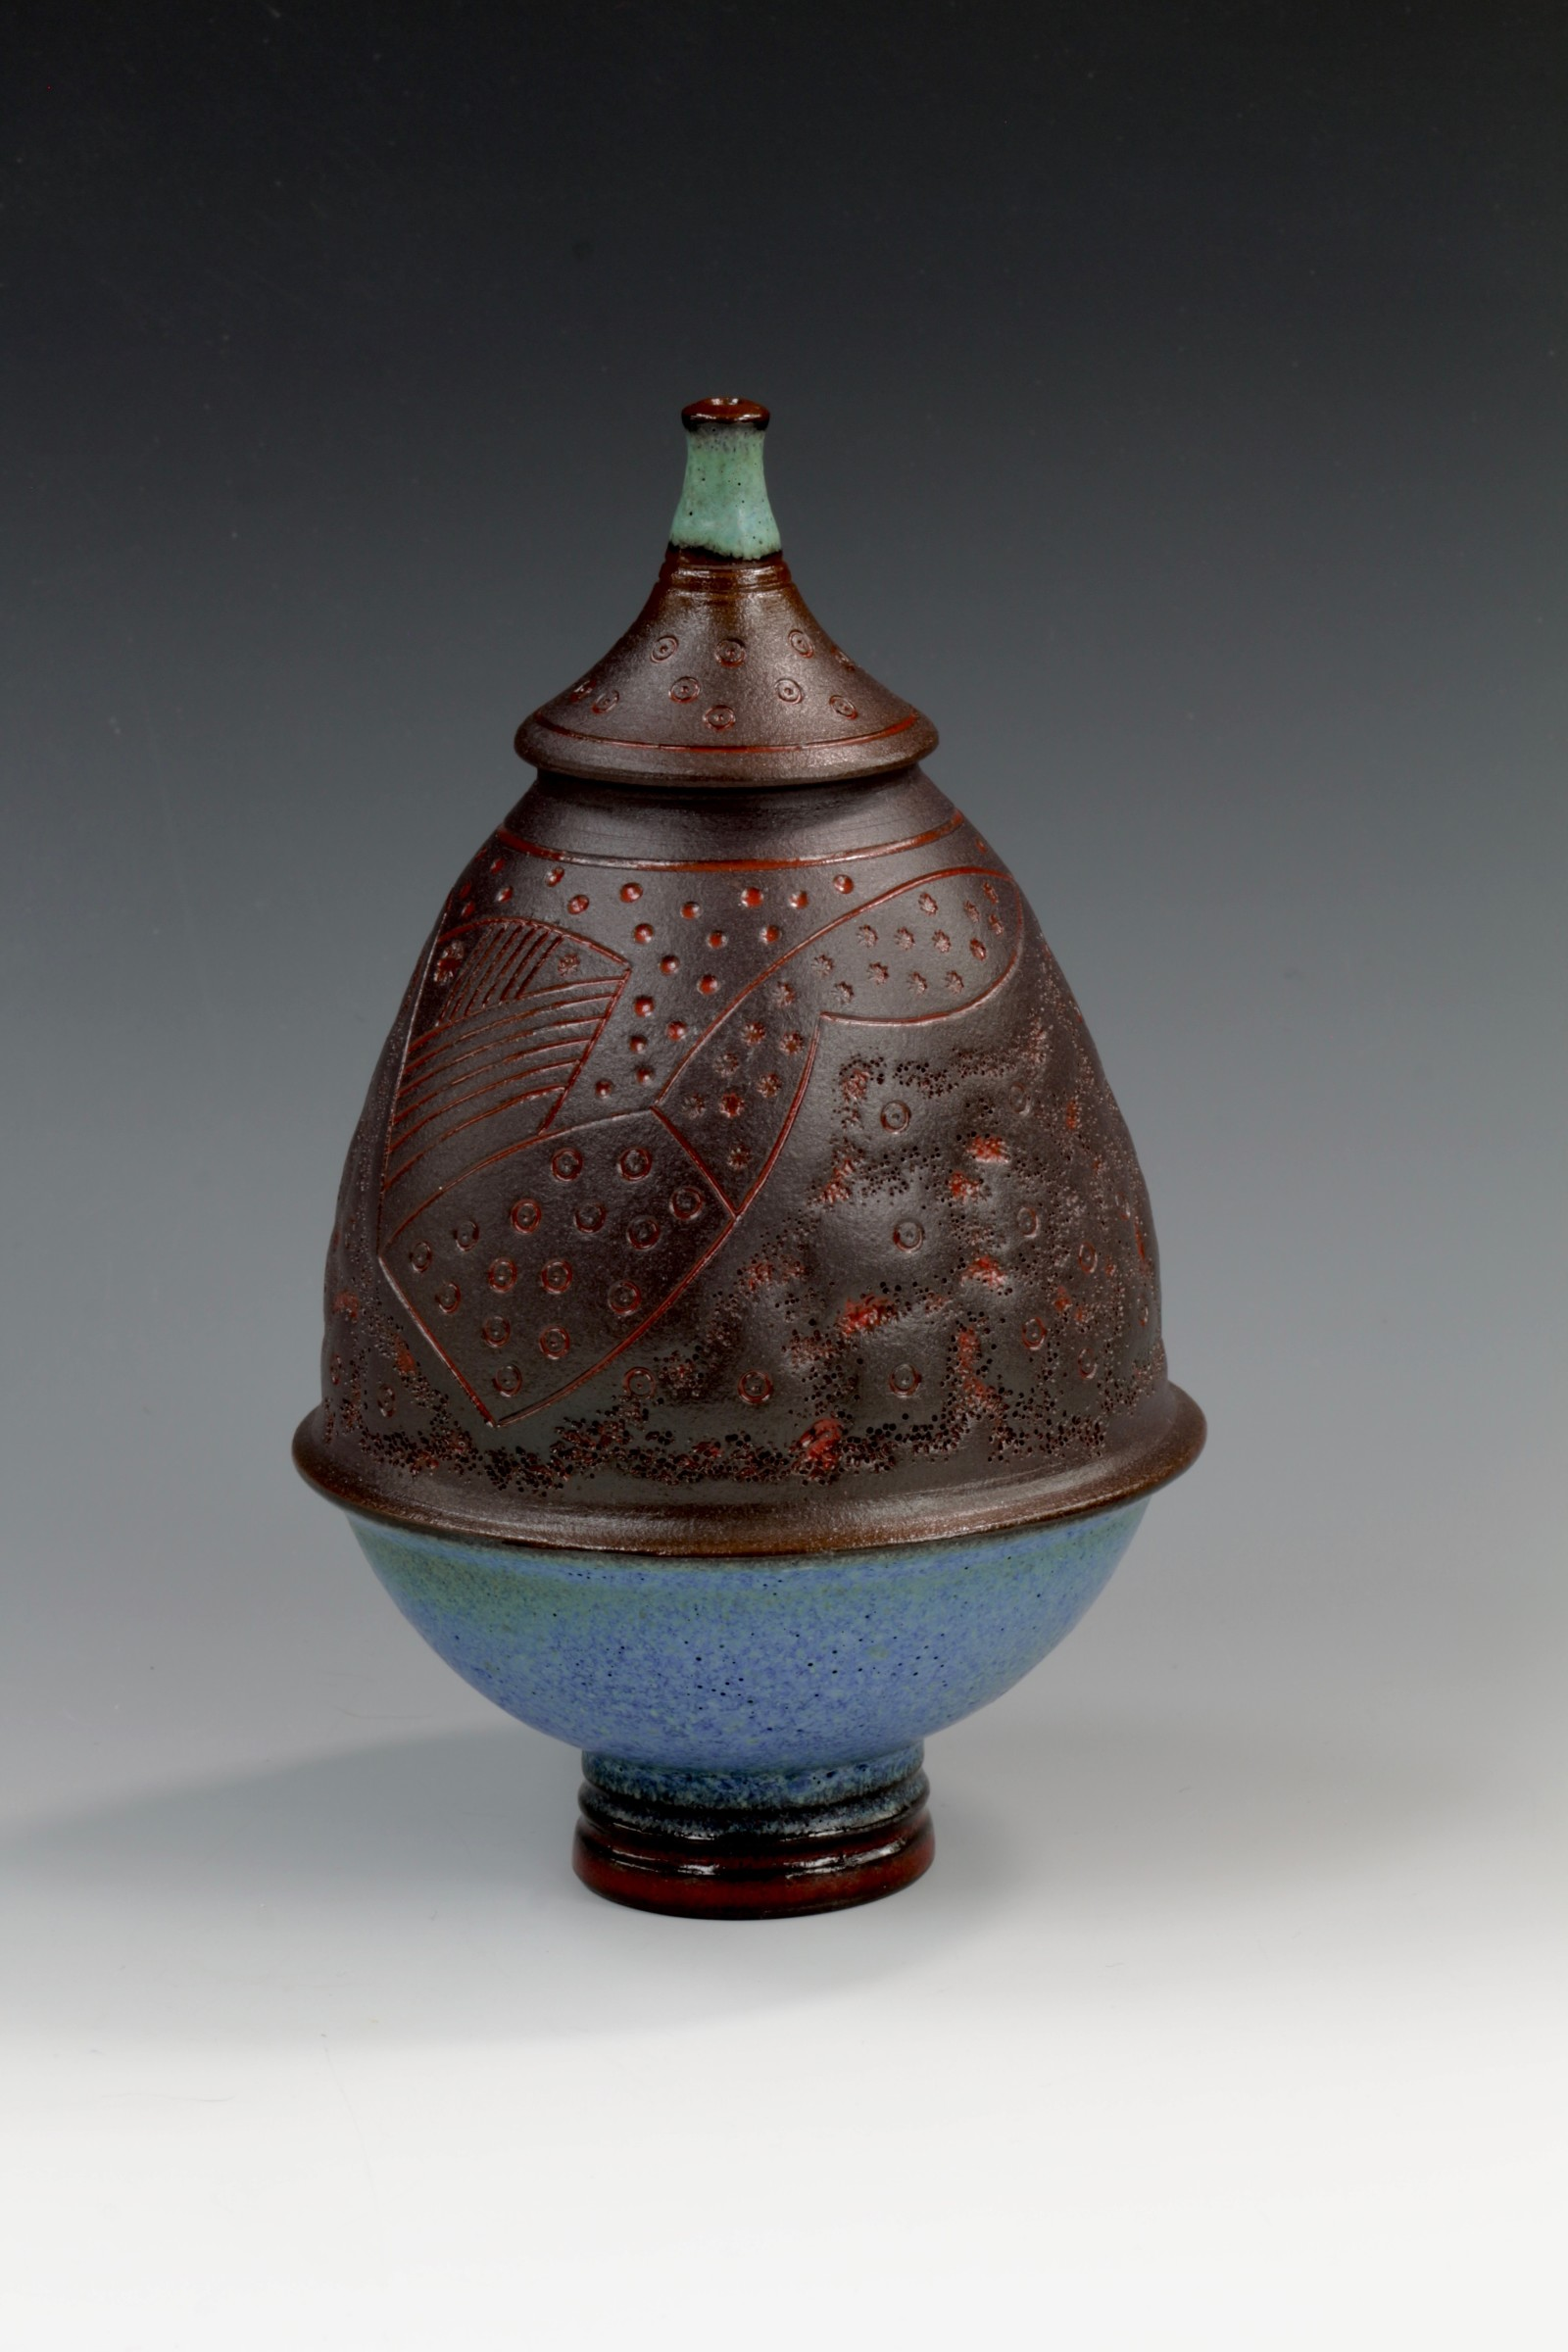 "<span class=""link fancybox-details-link""><a href=""/artists/61-geoffrey-swindell/works/6909-geoffrey-swindell-lidded-pot-2020/"">View Detail Page</a></span><div class=""artist""><strong>Geoffrey Swindell</strong></div> <div class=""title""><em>Lidded Pot</em>, 2020</div> <div class=""medium"">Porcelain</div><div class=""price"">£210.00</div><div class=""copyright_line"">Copyright The Artist</div>"